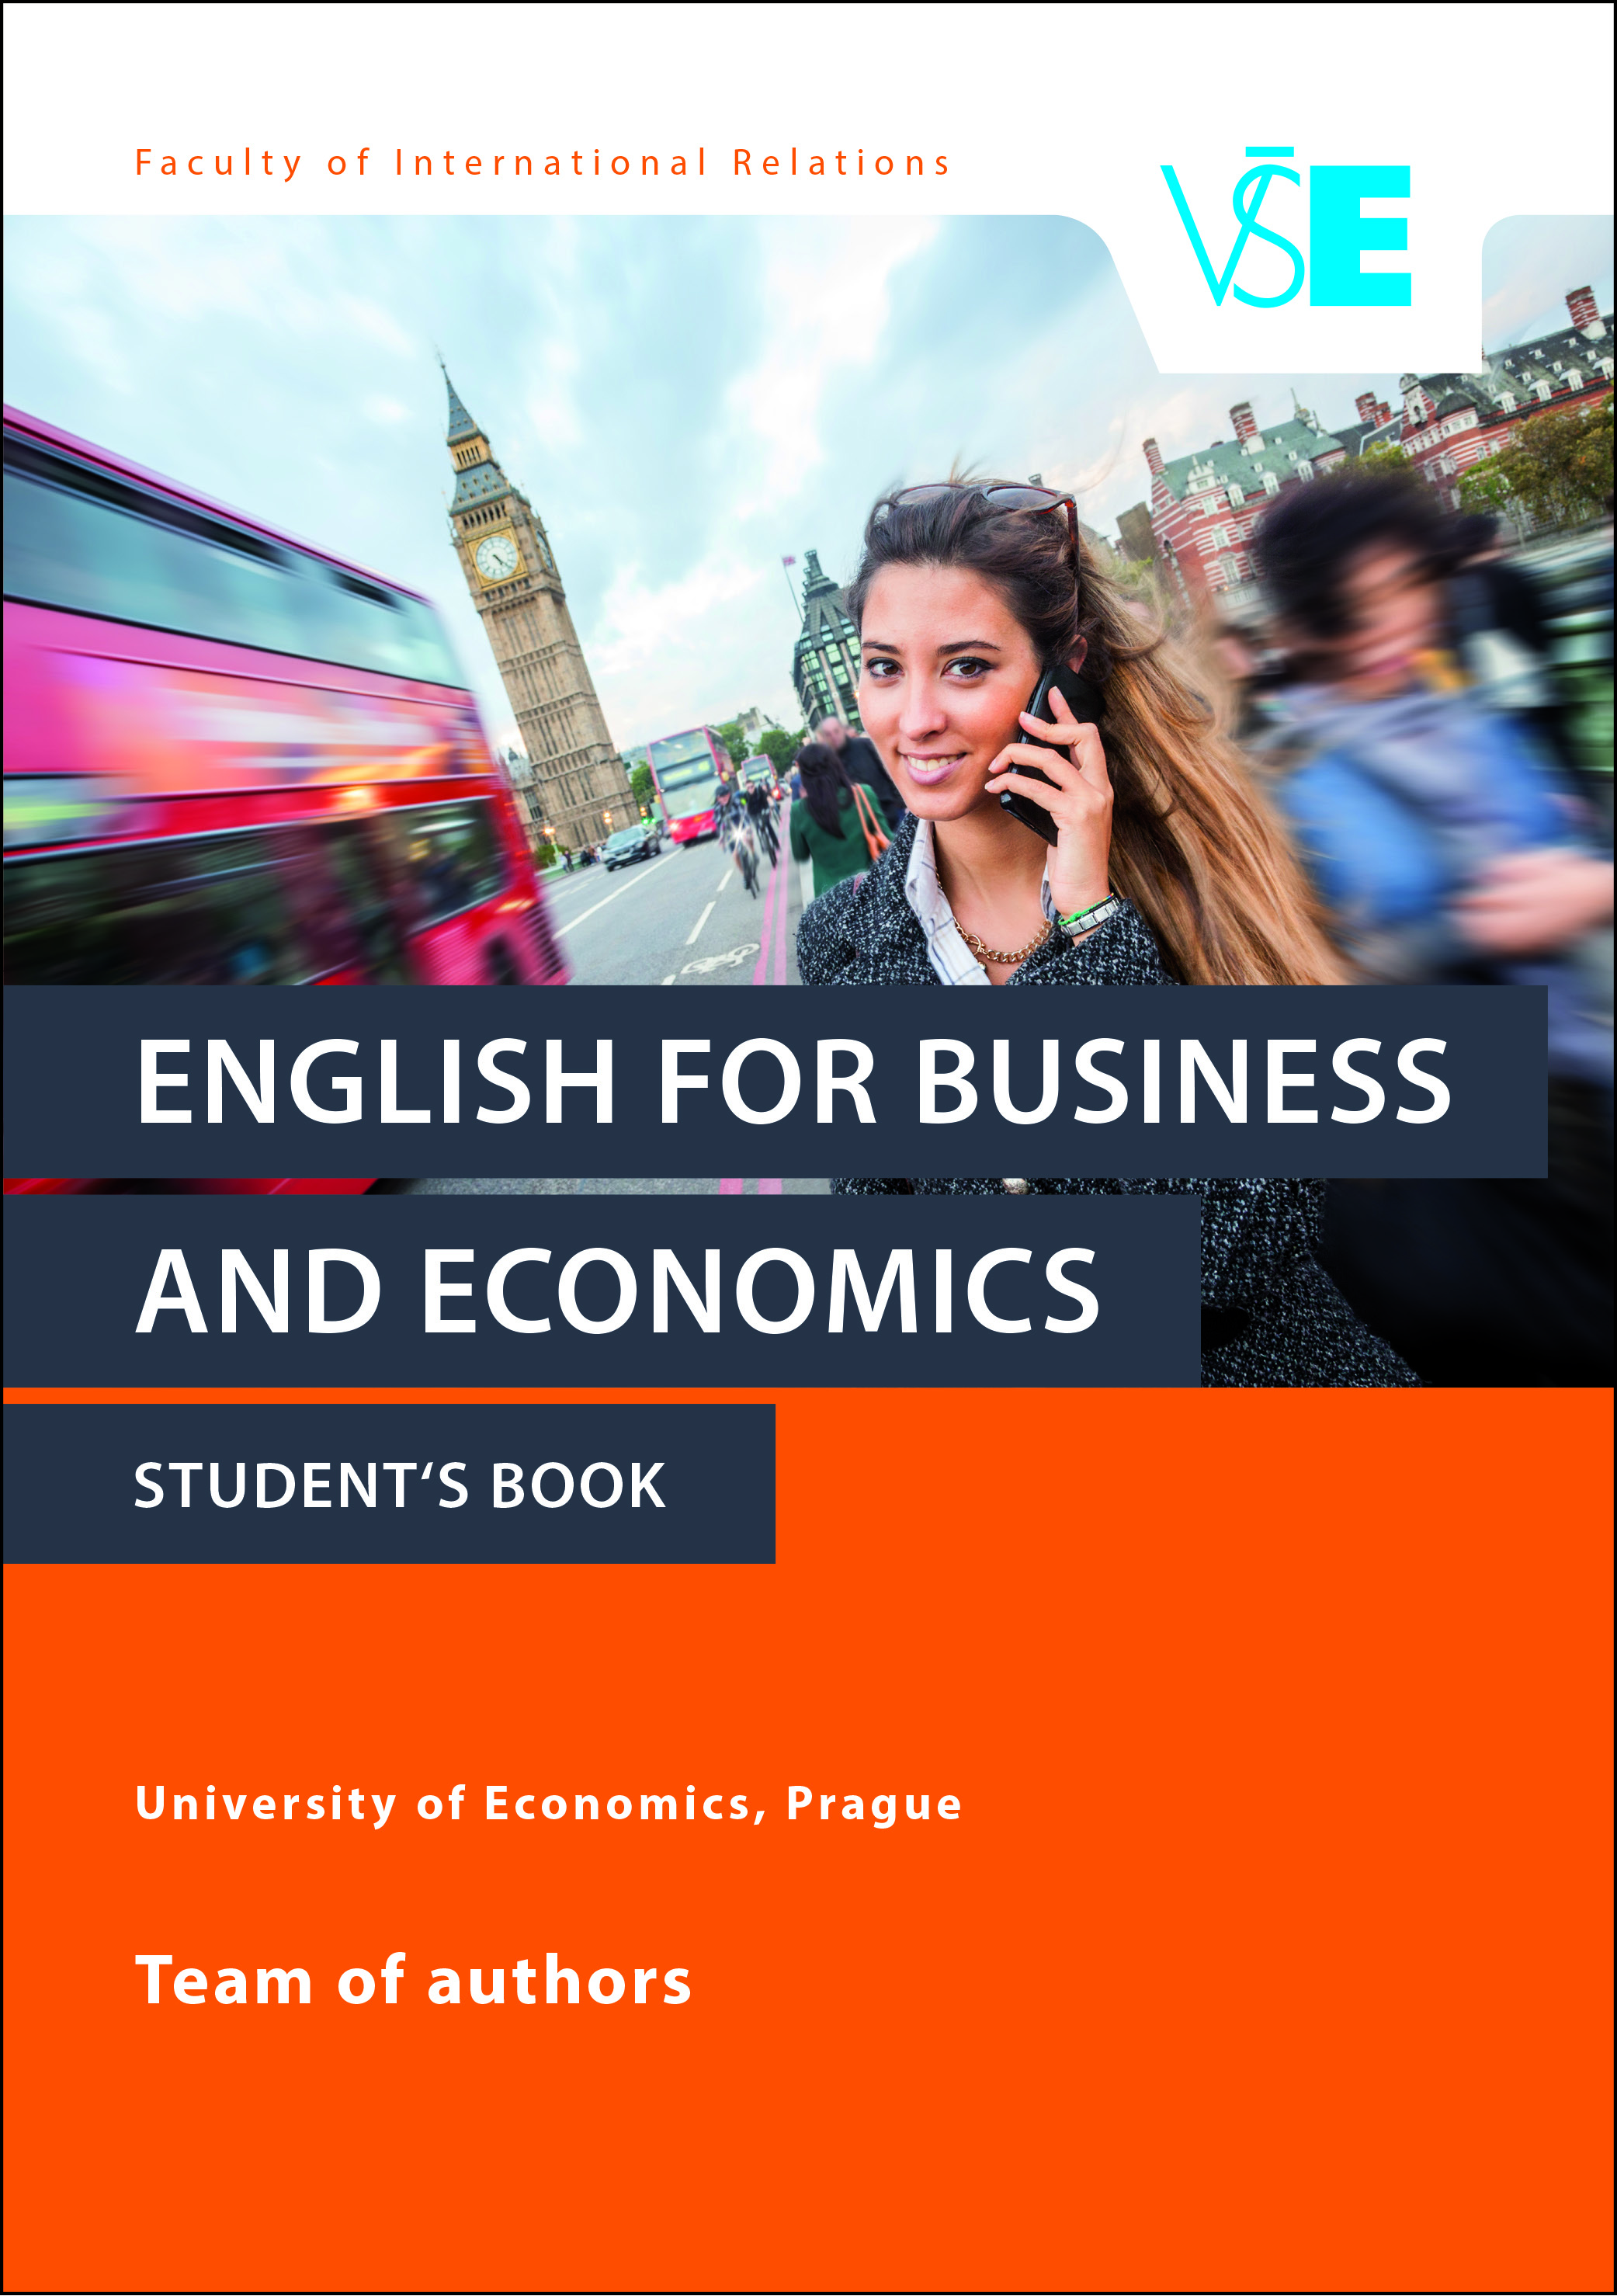 economics for business Business reporters research, write, and broadcast stories about business leaders, companies, industry trends, economic developments, and financial markets in essence, they are ongoing students of the modern economic world while also acting as journalists.